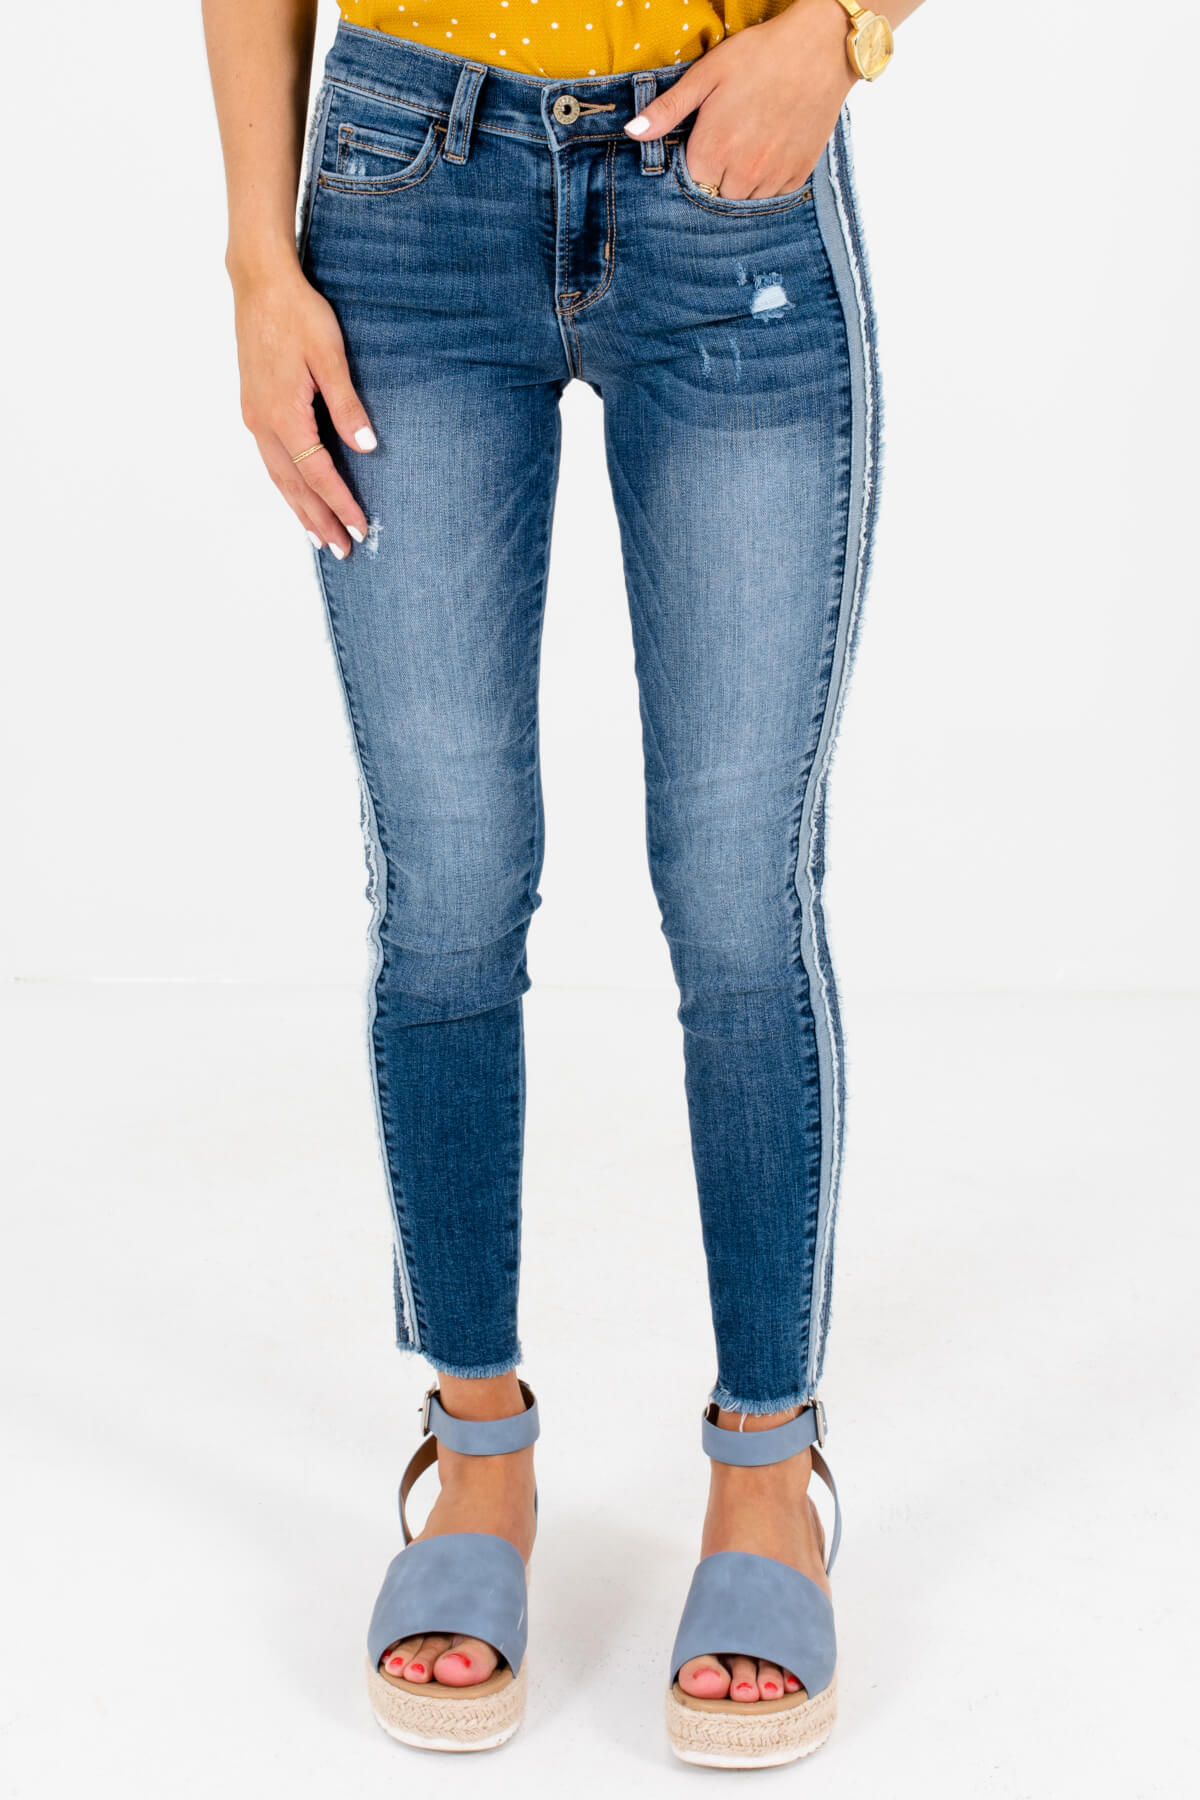 Medium Wash Denim Blue Skinny Style Boutique Jeans for Women